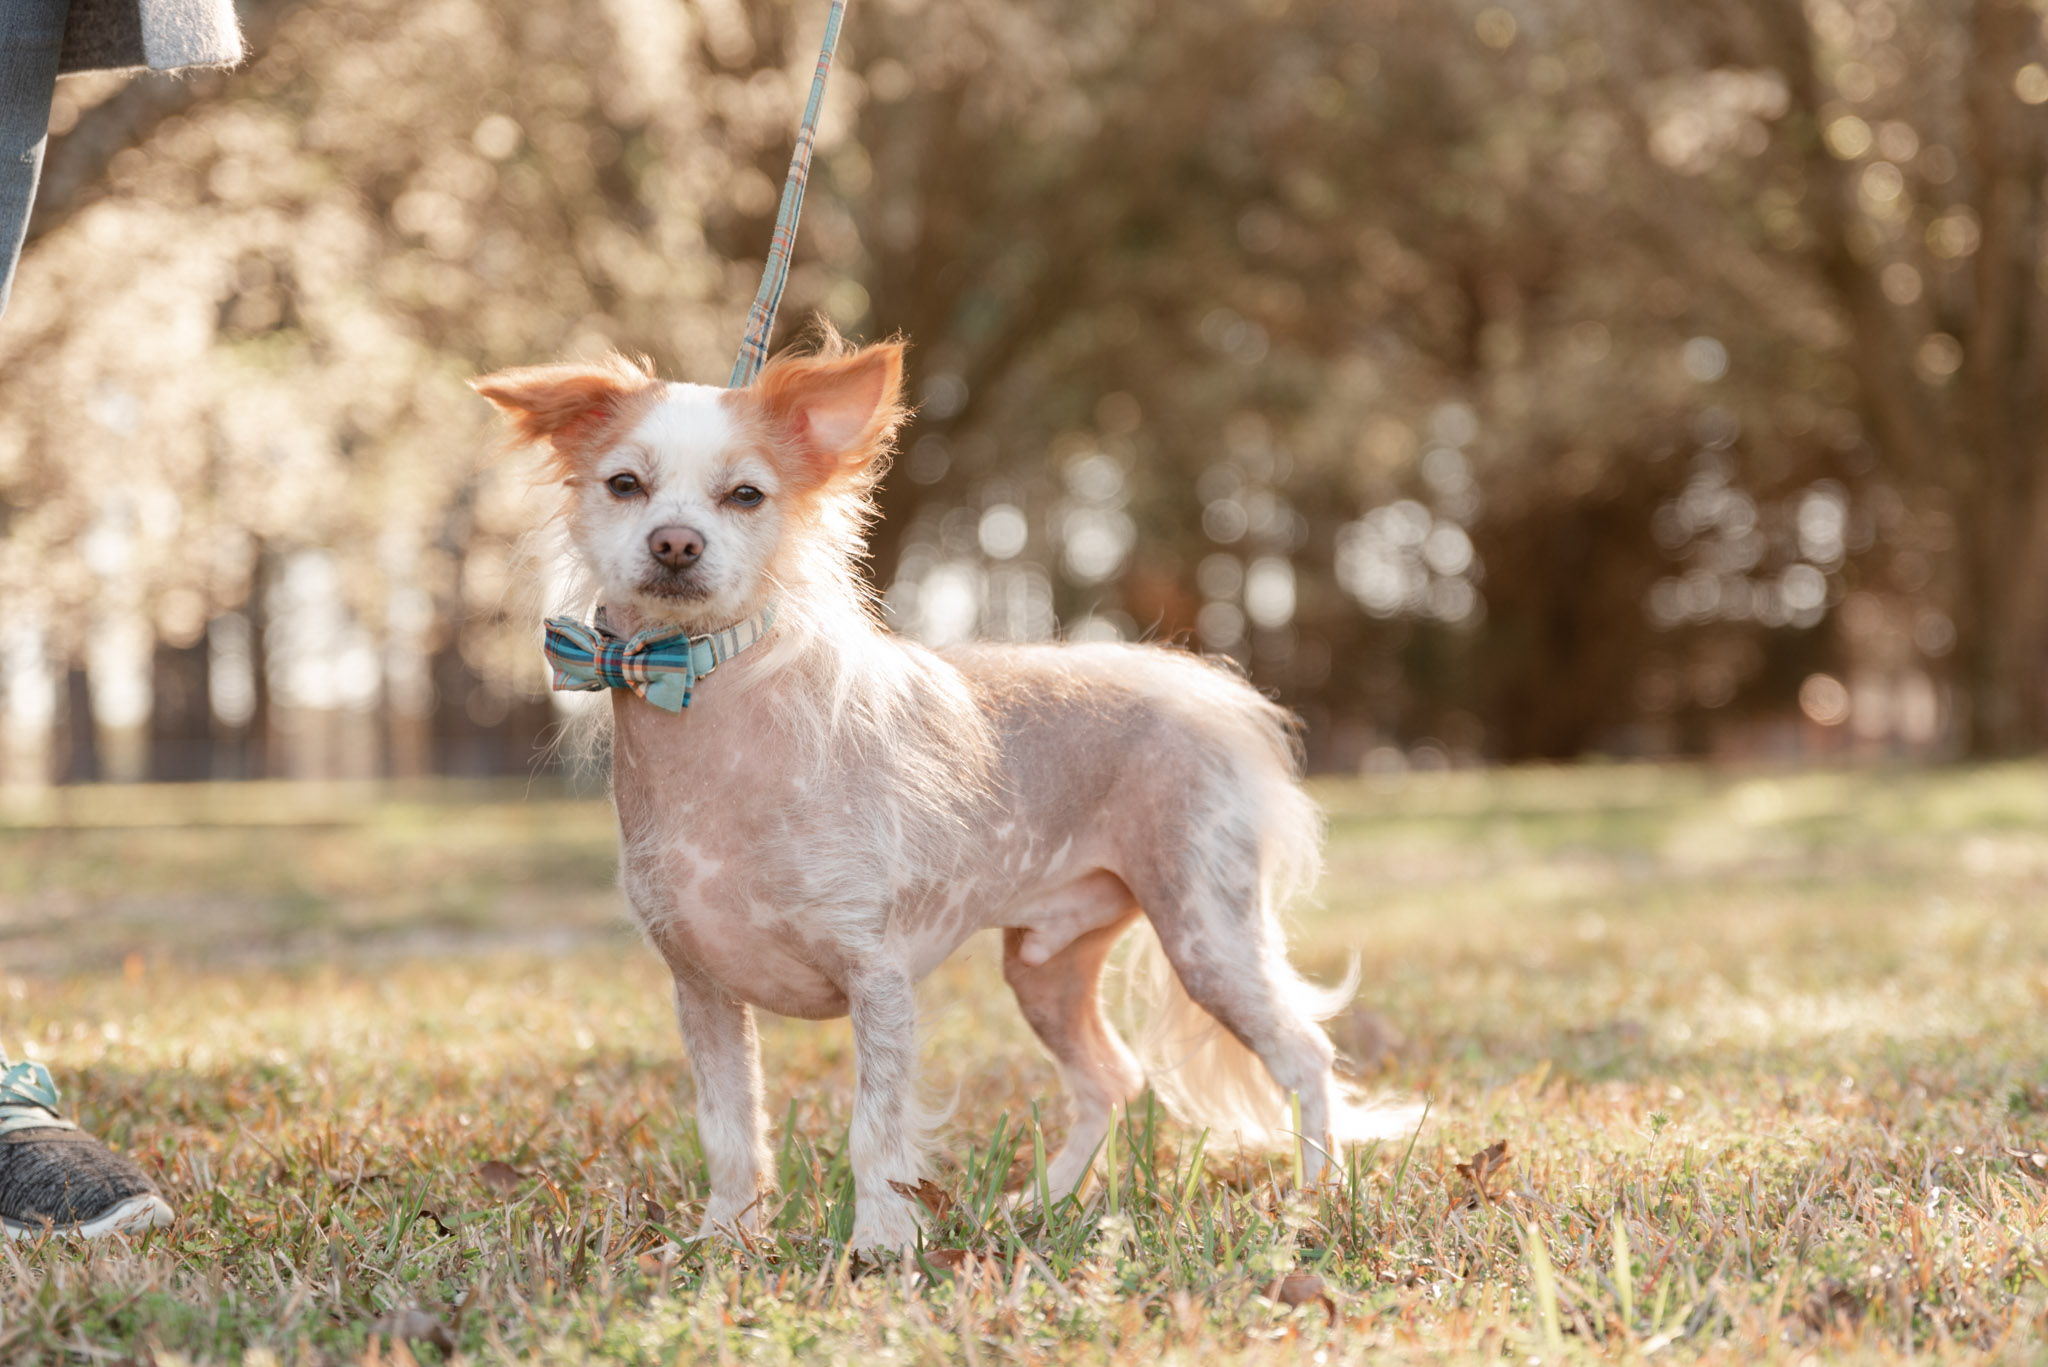 Atlanta pet photographer, Courtney Bryson, shows how leashes are removed in final images from a pet photography session.